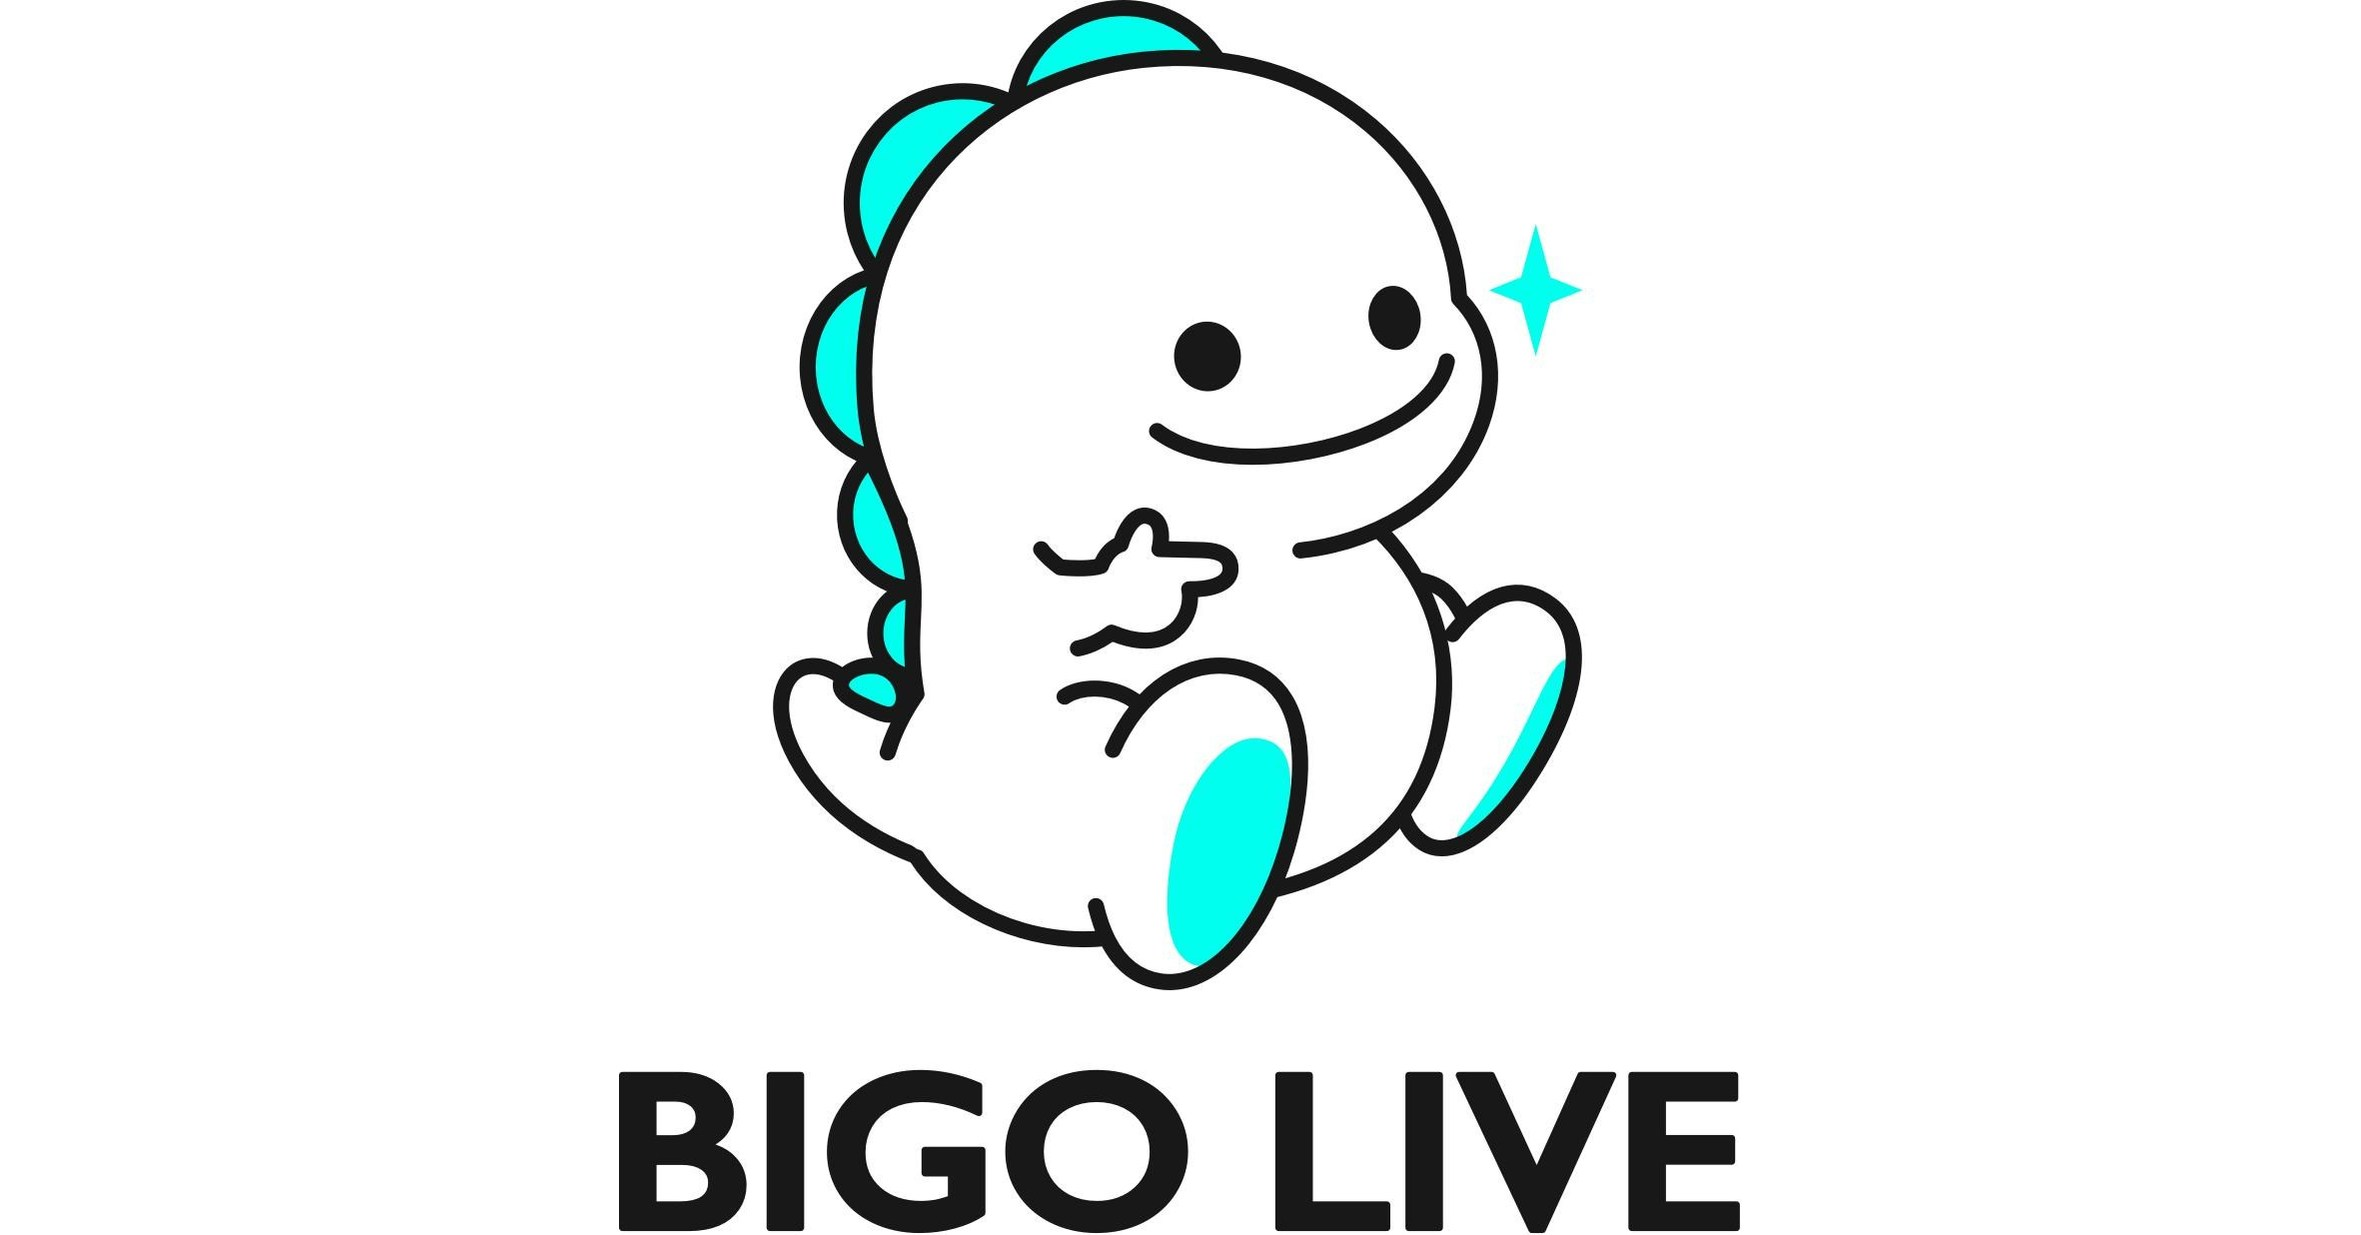 www.prnewswire.com: Bigo Live to Celebrate Asian Americans and Pacific Islanders with Dedicated Panel on April 9